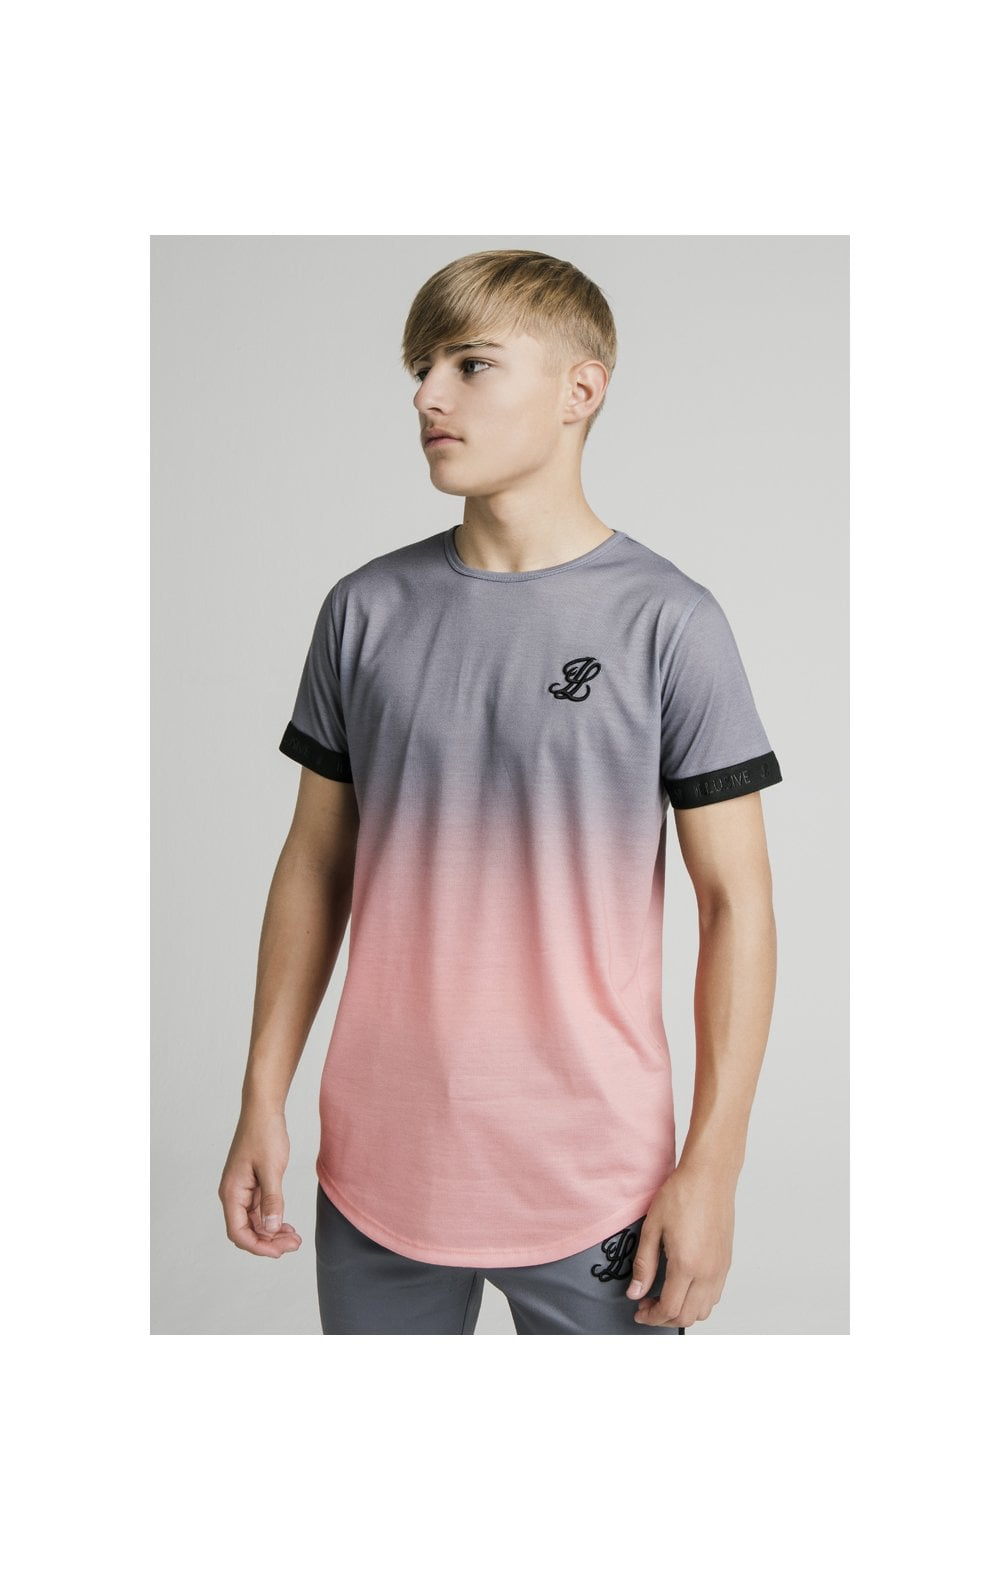 Load image into Gallery viewer, Illusive London Fade Tech Tee - Grey & Peach